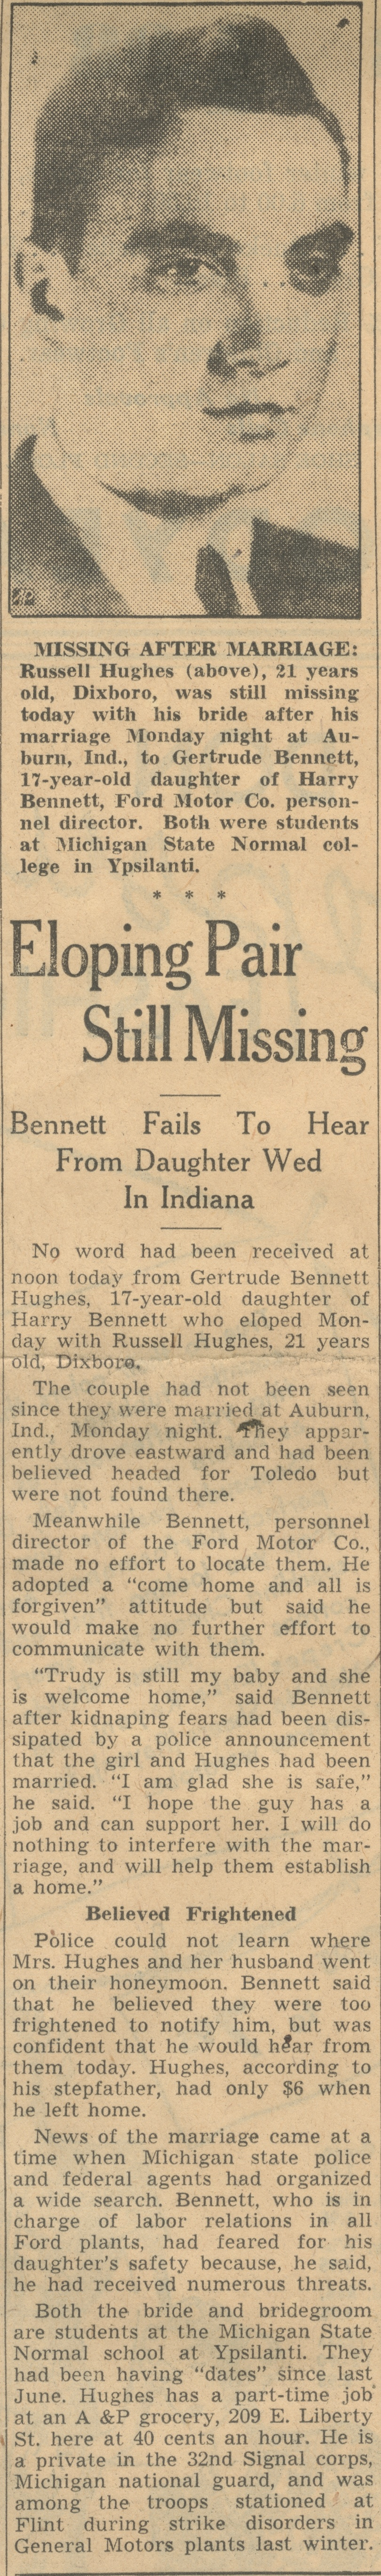 Eloping Pair Still Missing - Bennett Fails To Hear From Daughter Wed In Indiana image